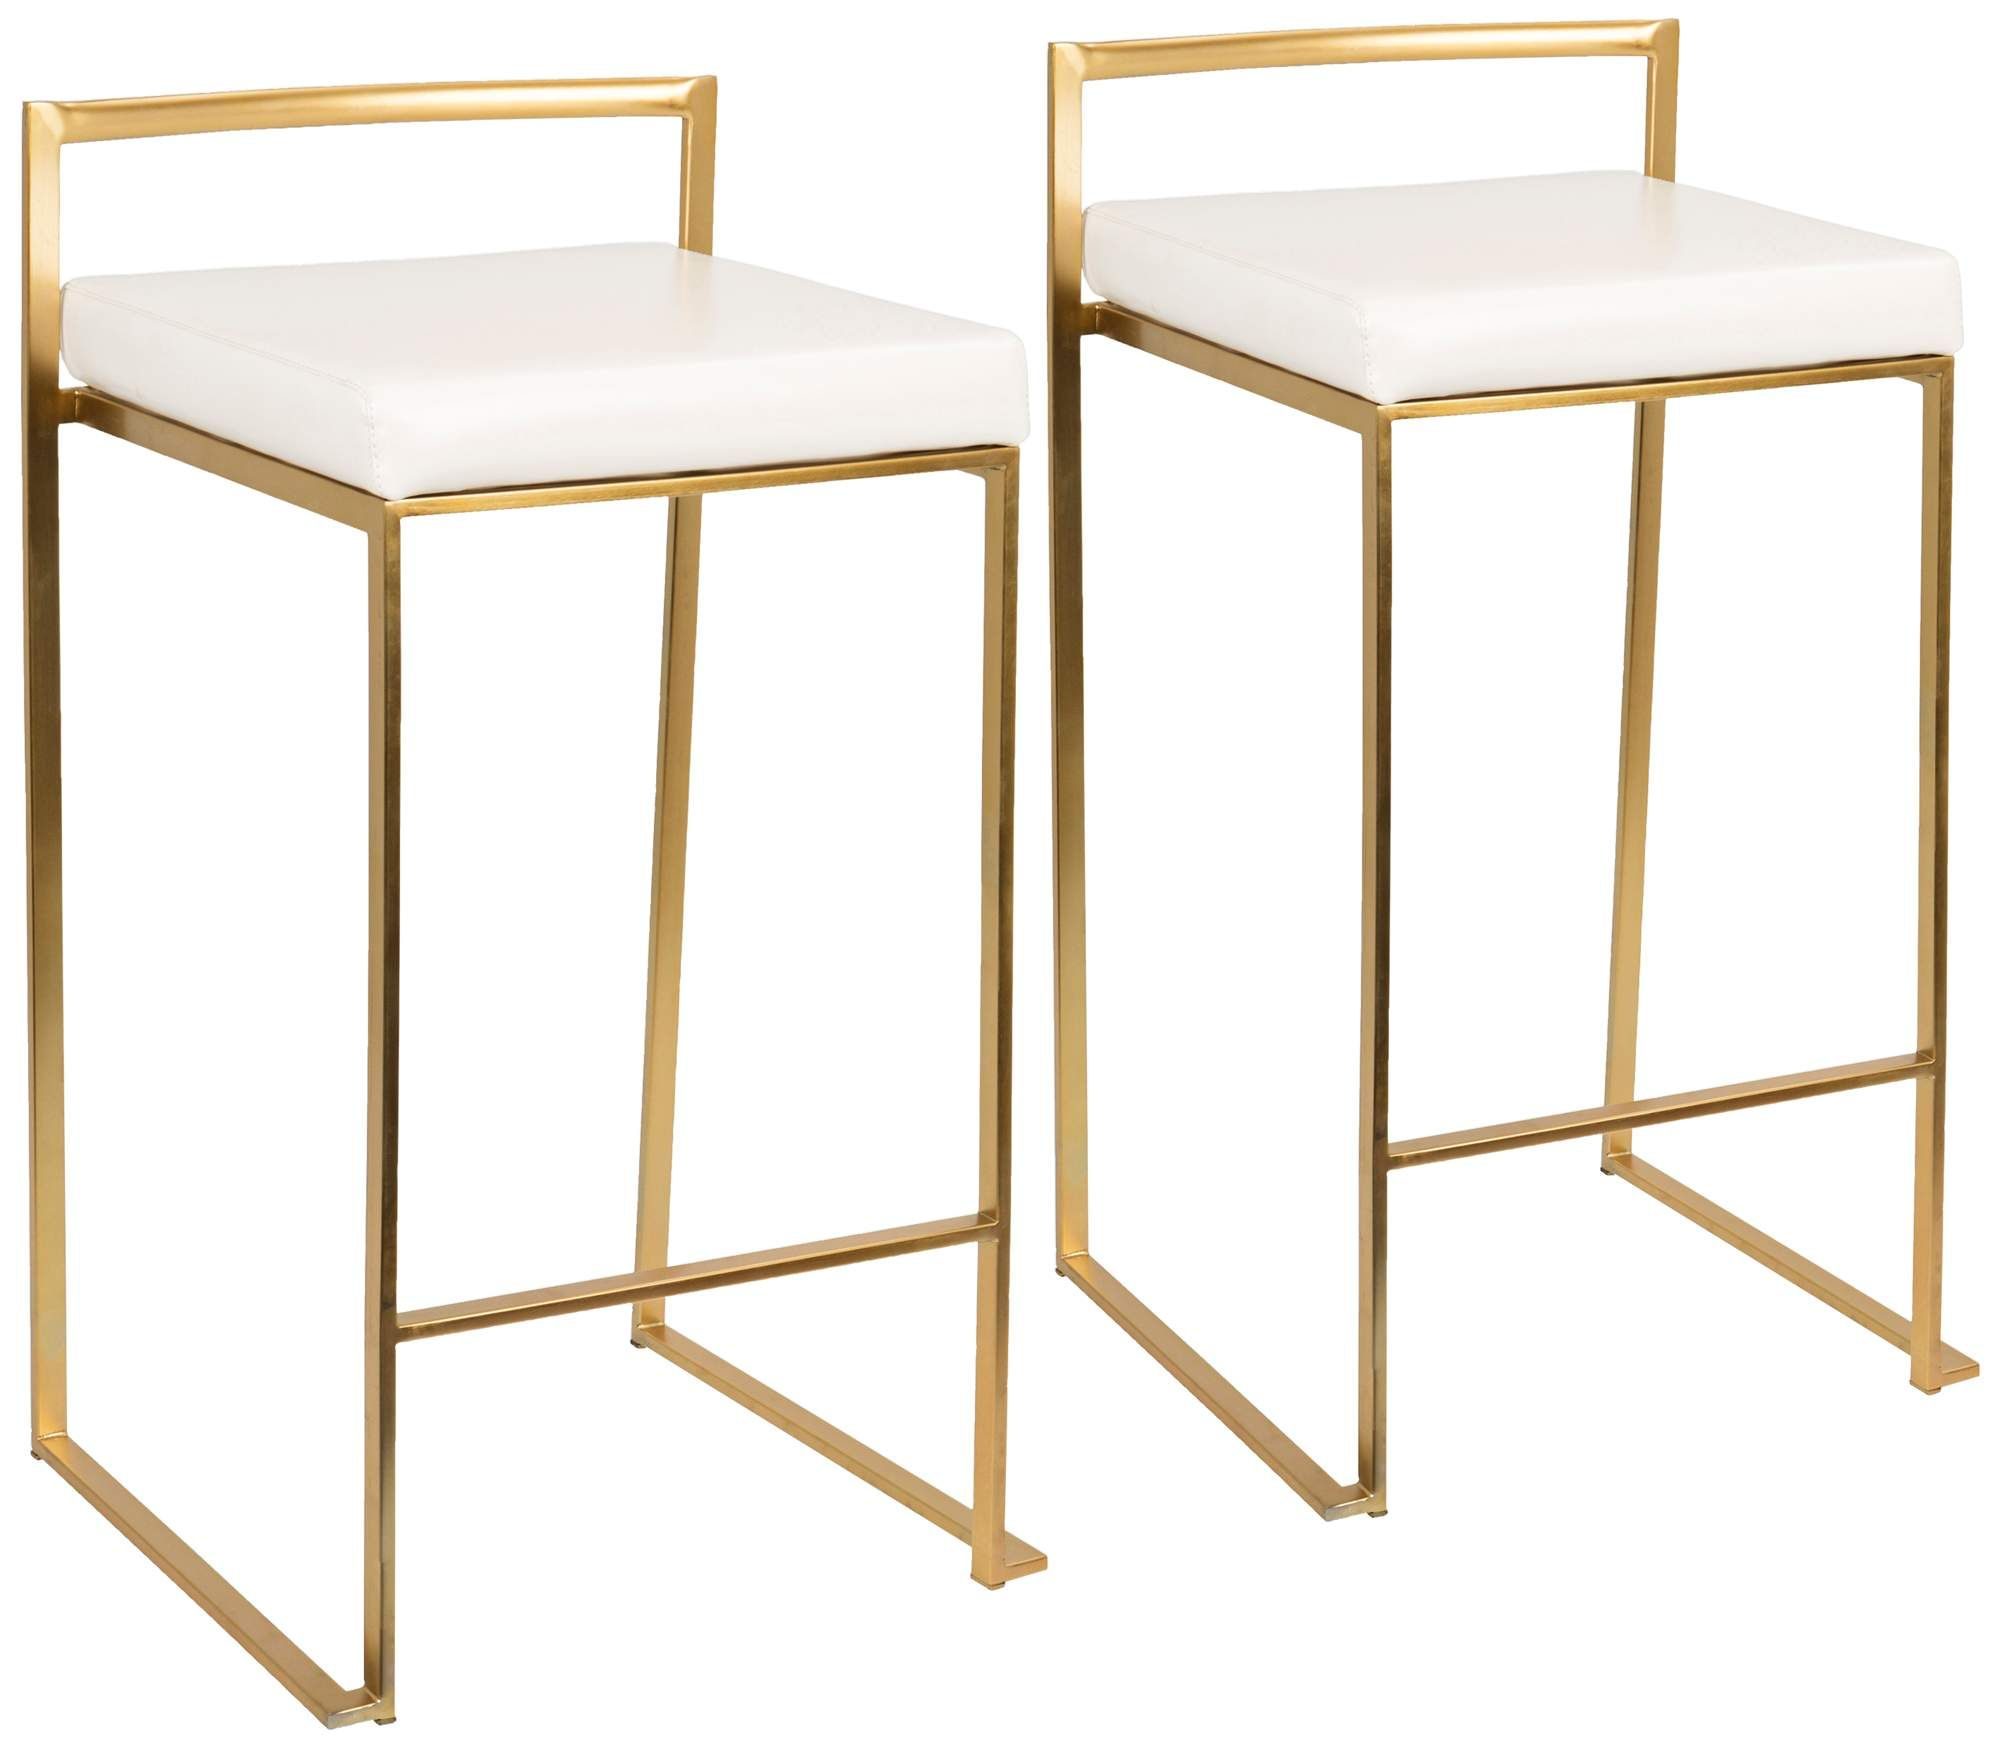 Fuji 27 Inch White Faux Leather Counter Stool Set Of 2 In 2020